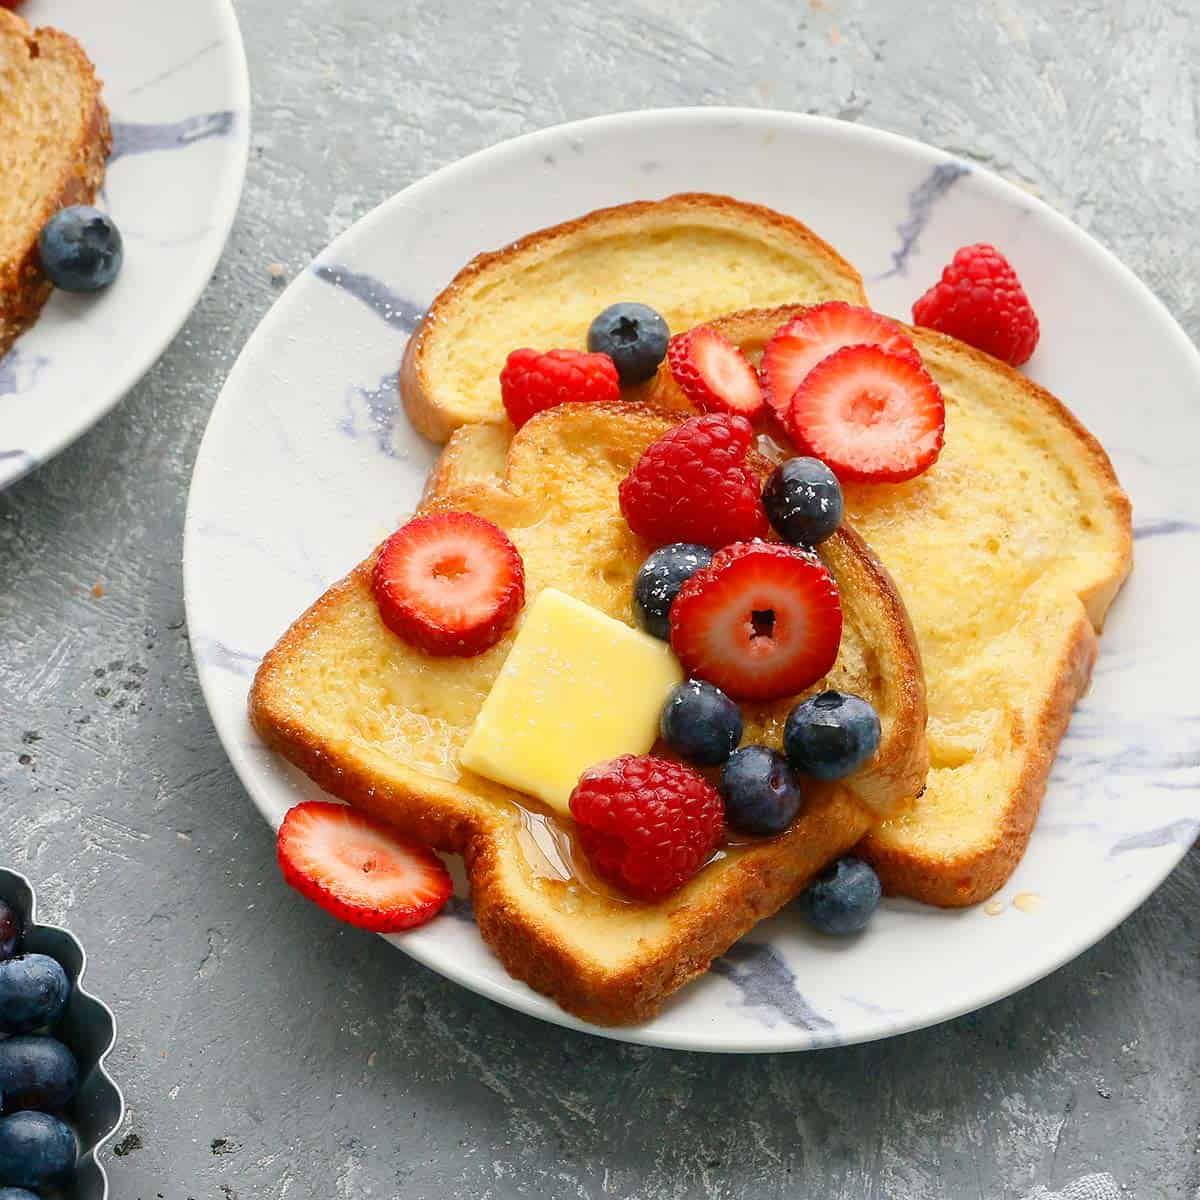 white plates with air fried french toast topped with butter and berries